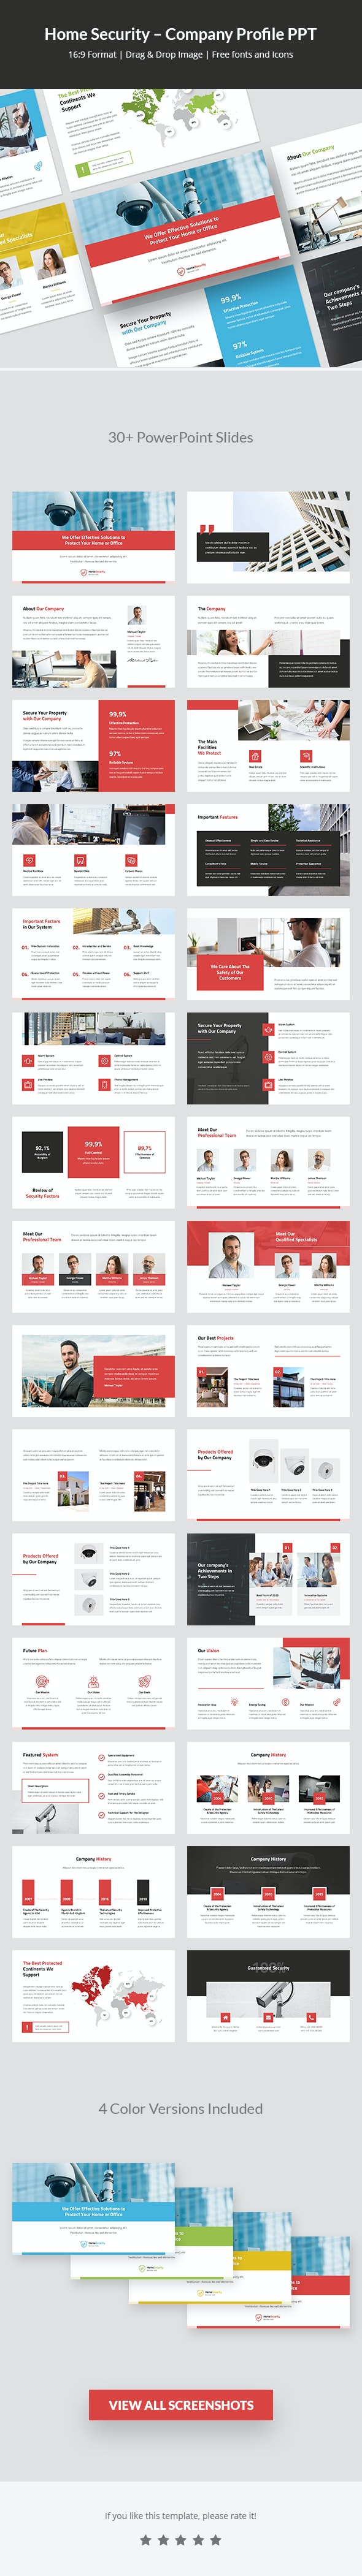 Home Security – Company Profile PPT - PowerPoint Templates Presentation Templates